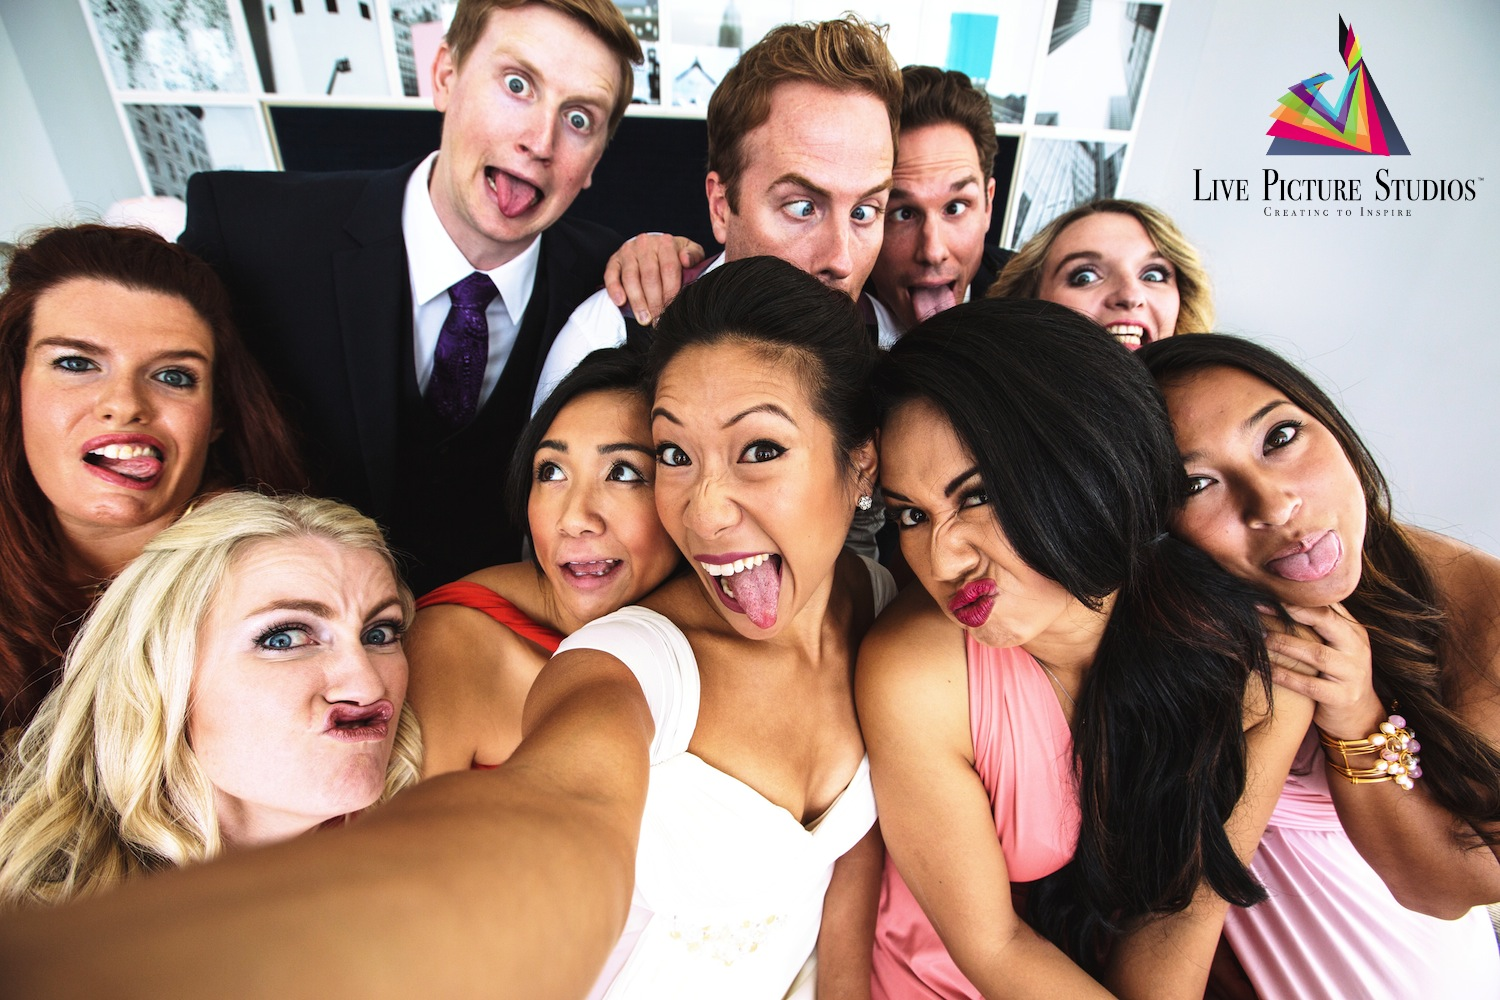 3 Tips from Our NJ Wedding Videographers for Making Your Celebration More Personal